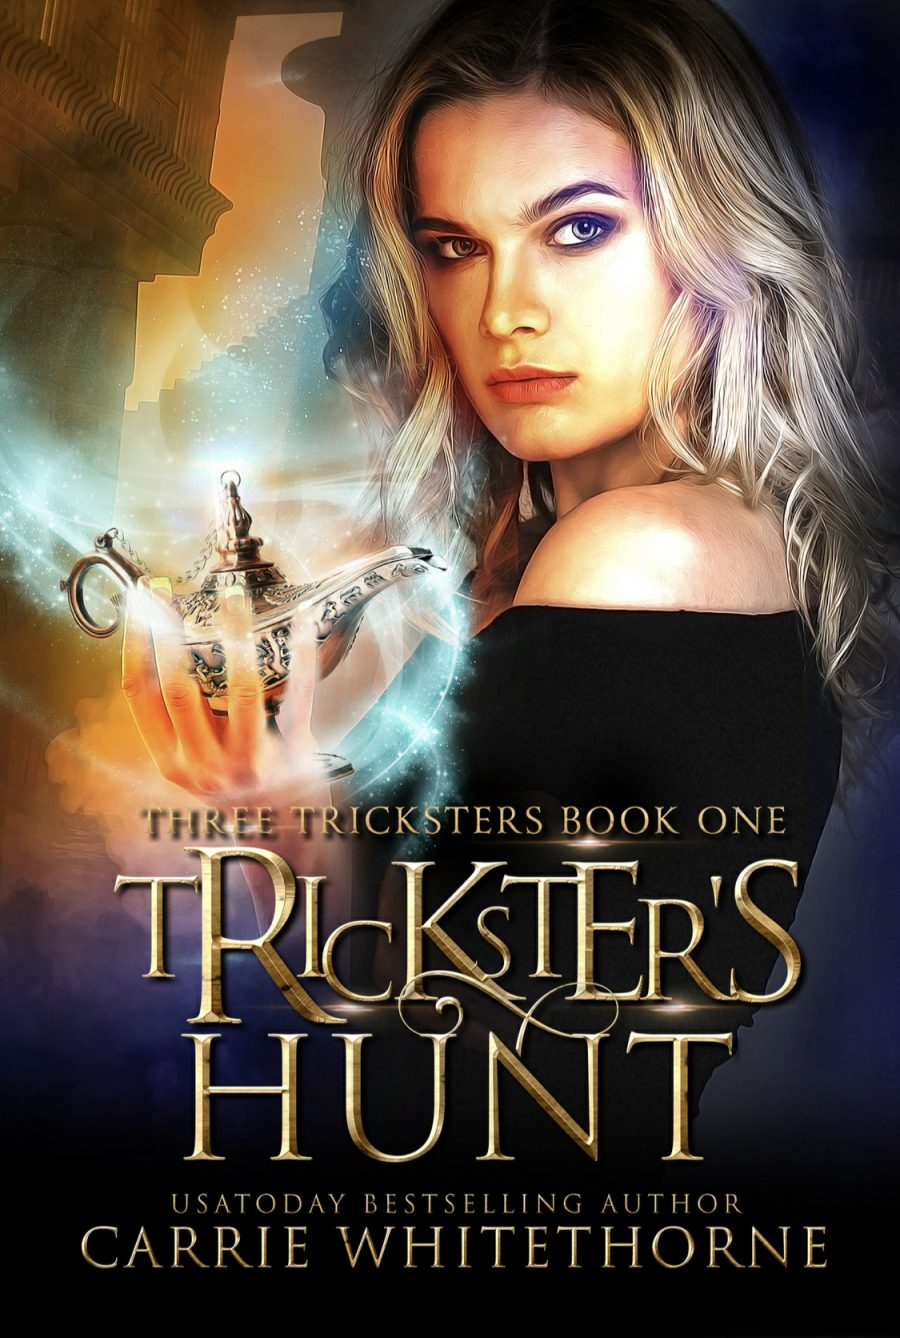 Trickster's Hunt by Carrie Whitethorne - A Book Review #BookReview #MediumBurn #ReverseHarem #RH #WhyChoose #Paranormal #Genie #KindleUnlimited #KU